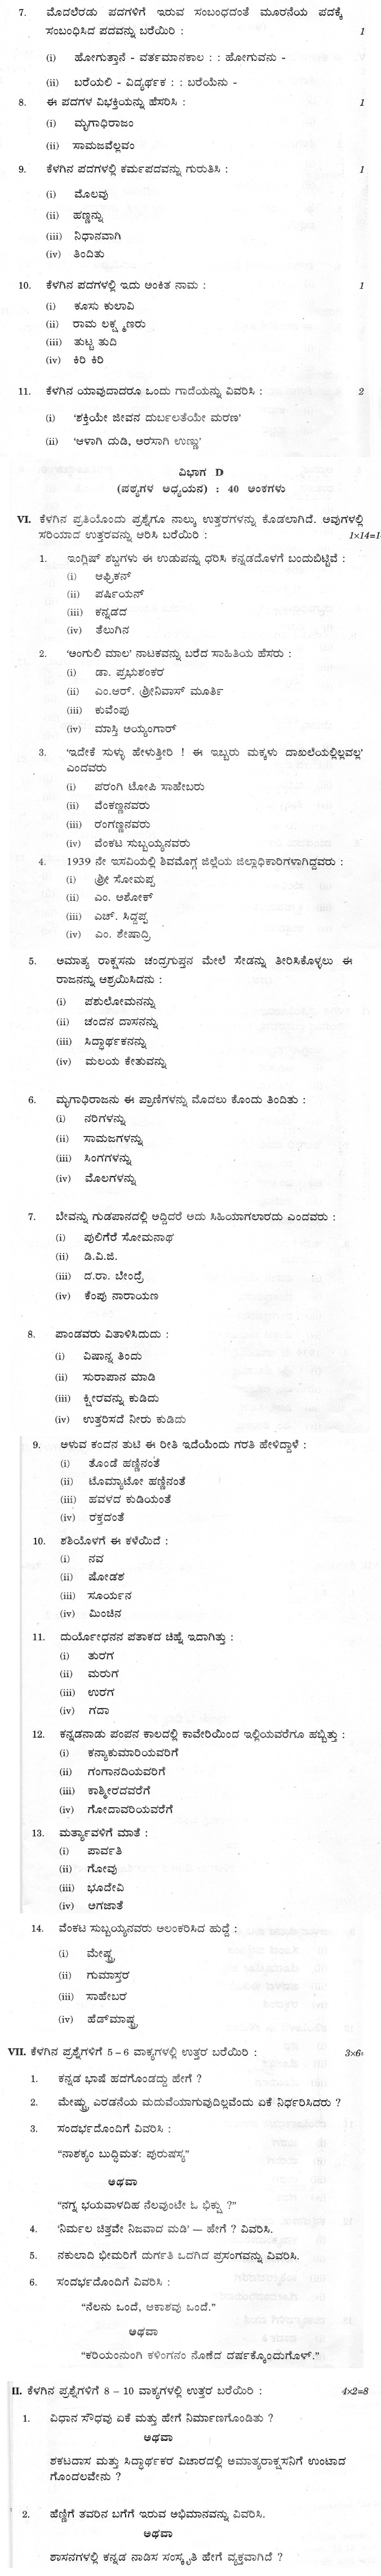 CBSE Class X Previous Year Question Papers 2012 Kannada